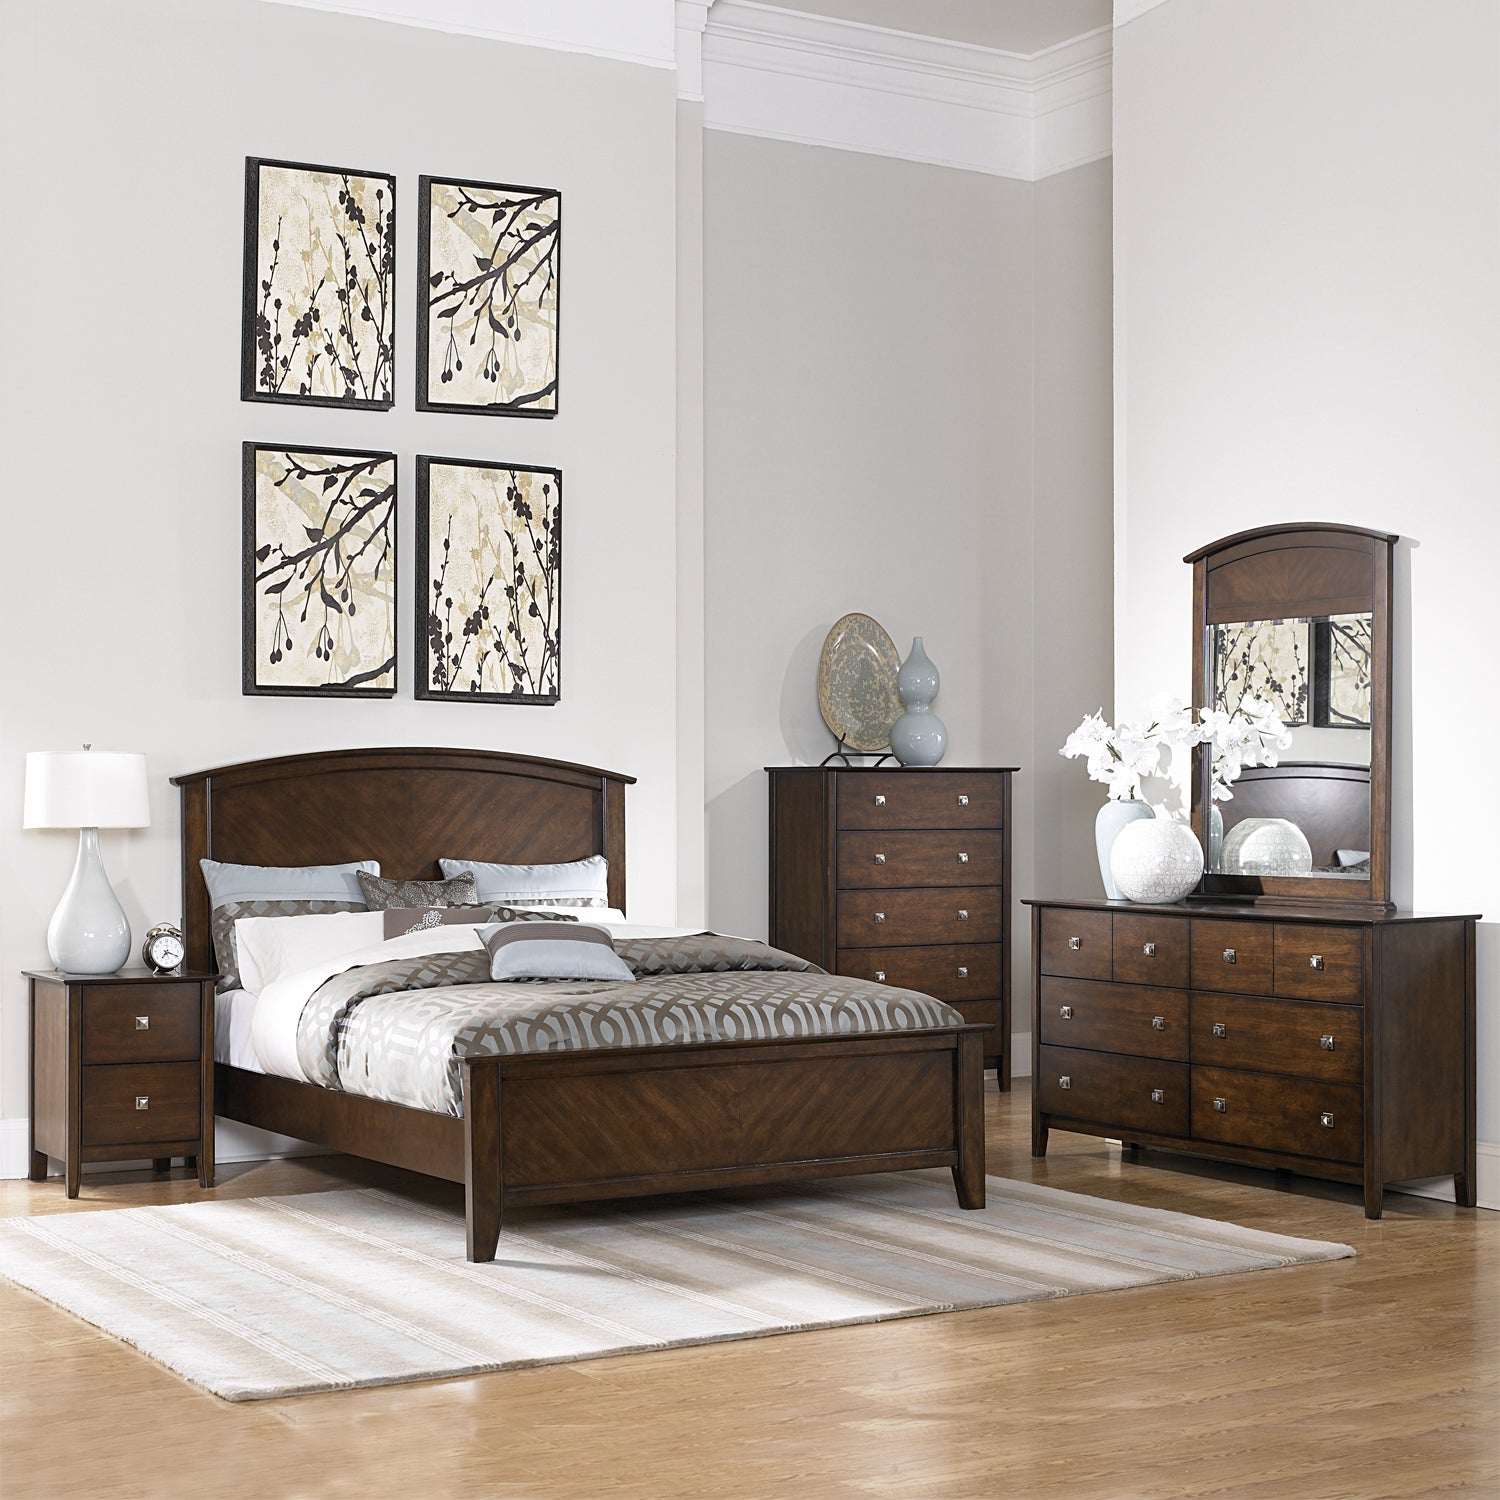 Nurmes Warm Cherry Queen-size Transitional 5-piece Bedroom Set - Thumbnail 0